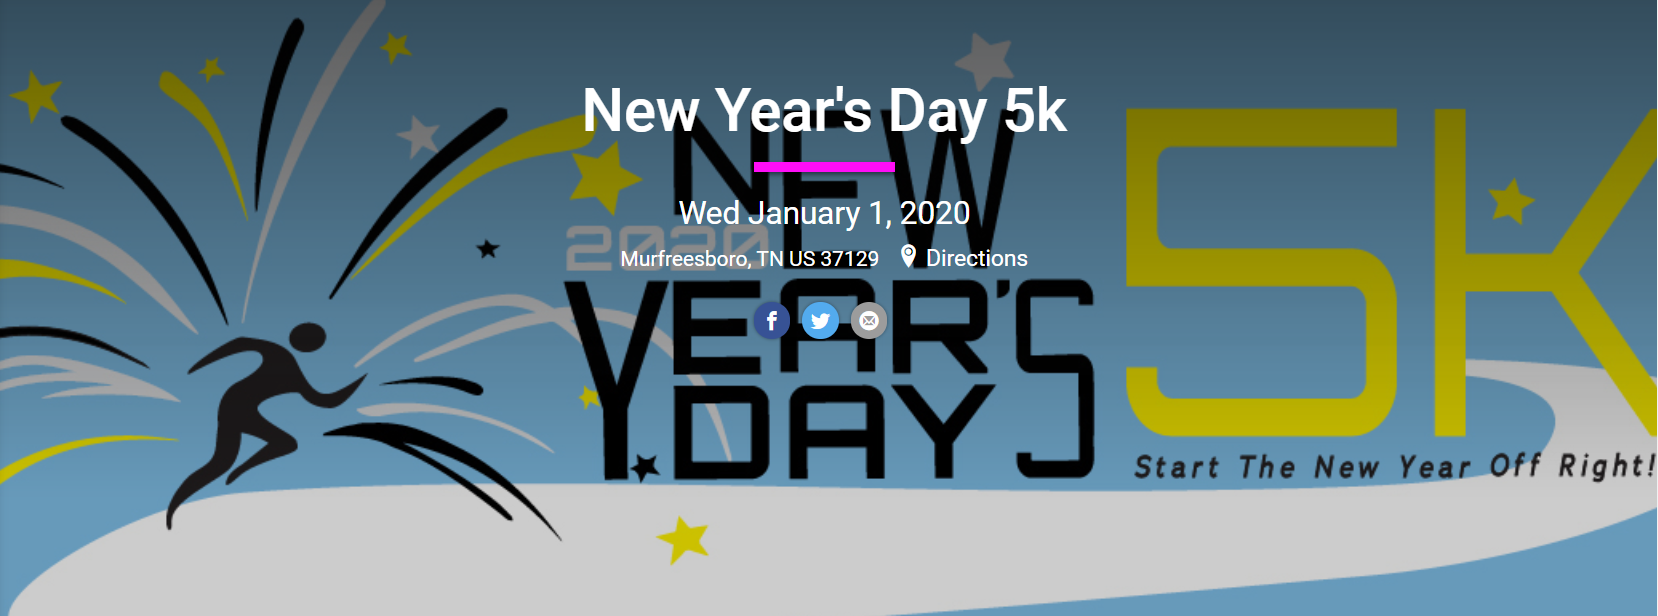 New Years Day 5K in Murfreesboro